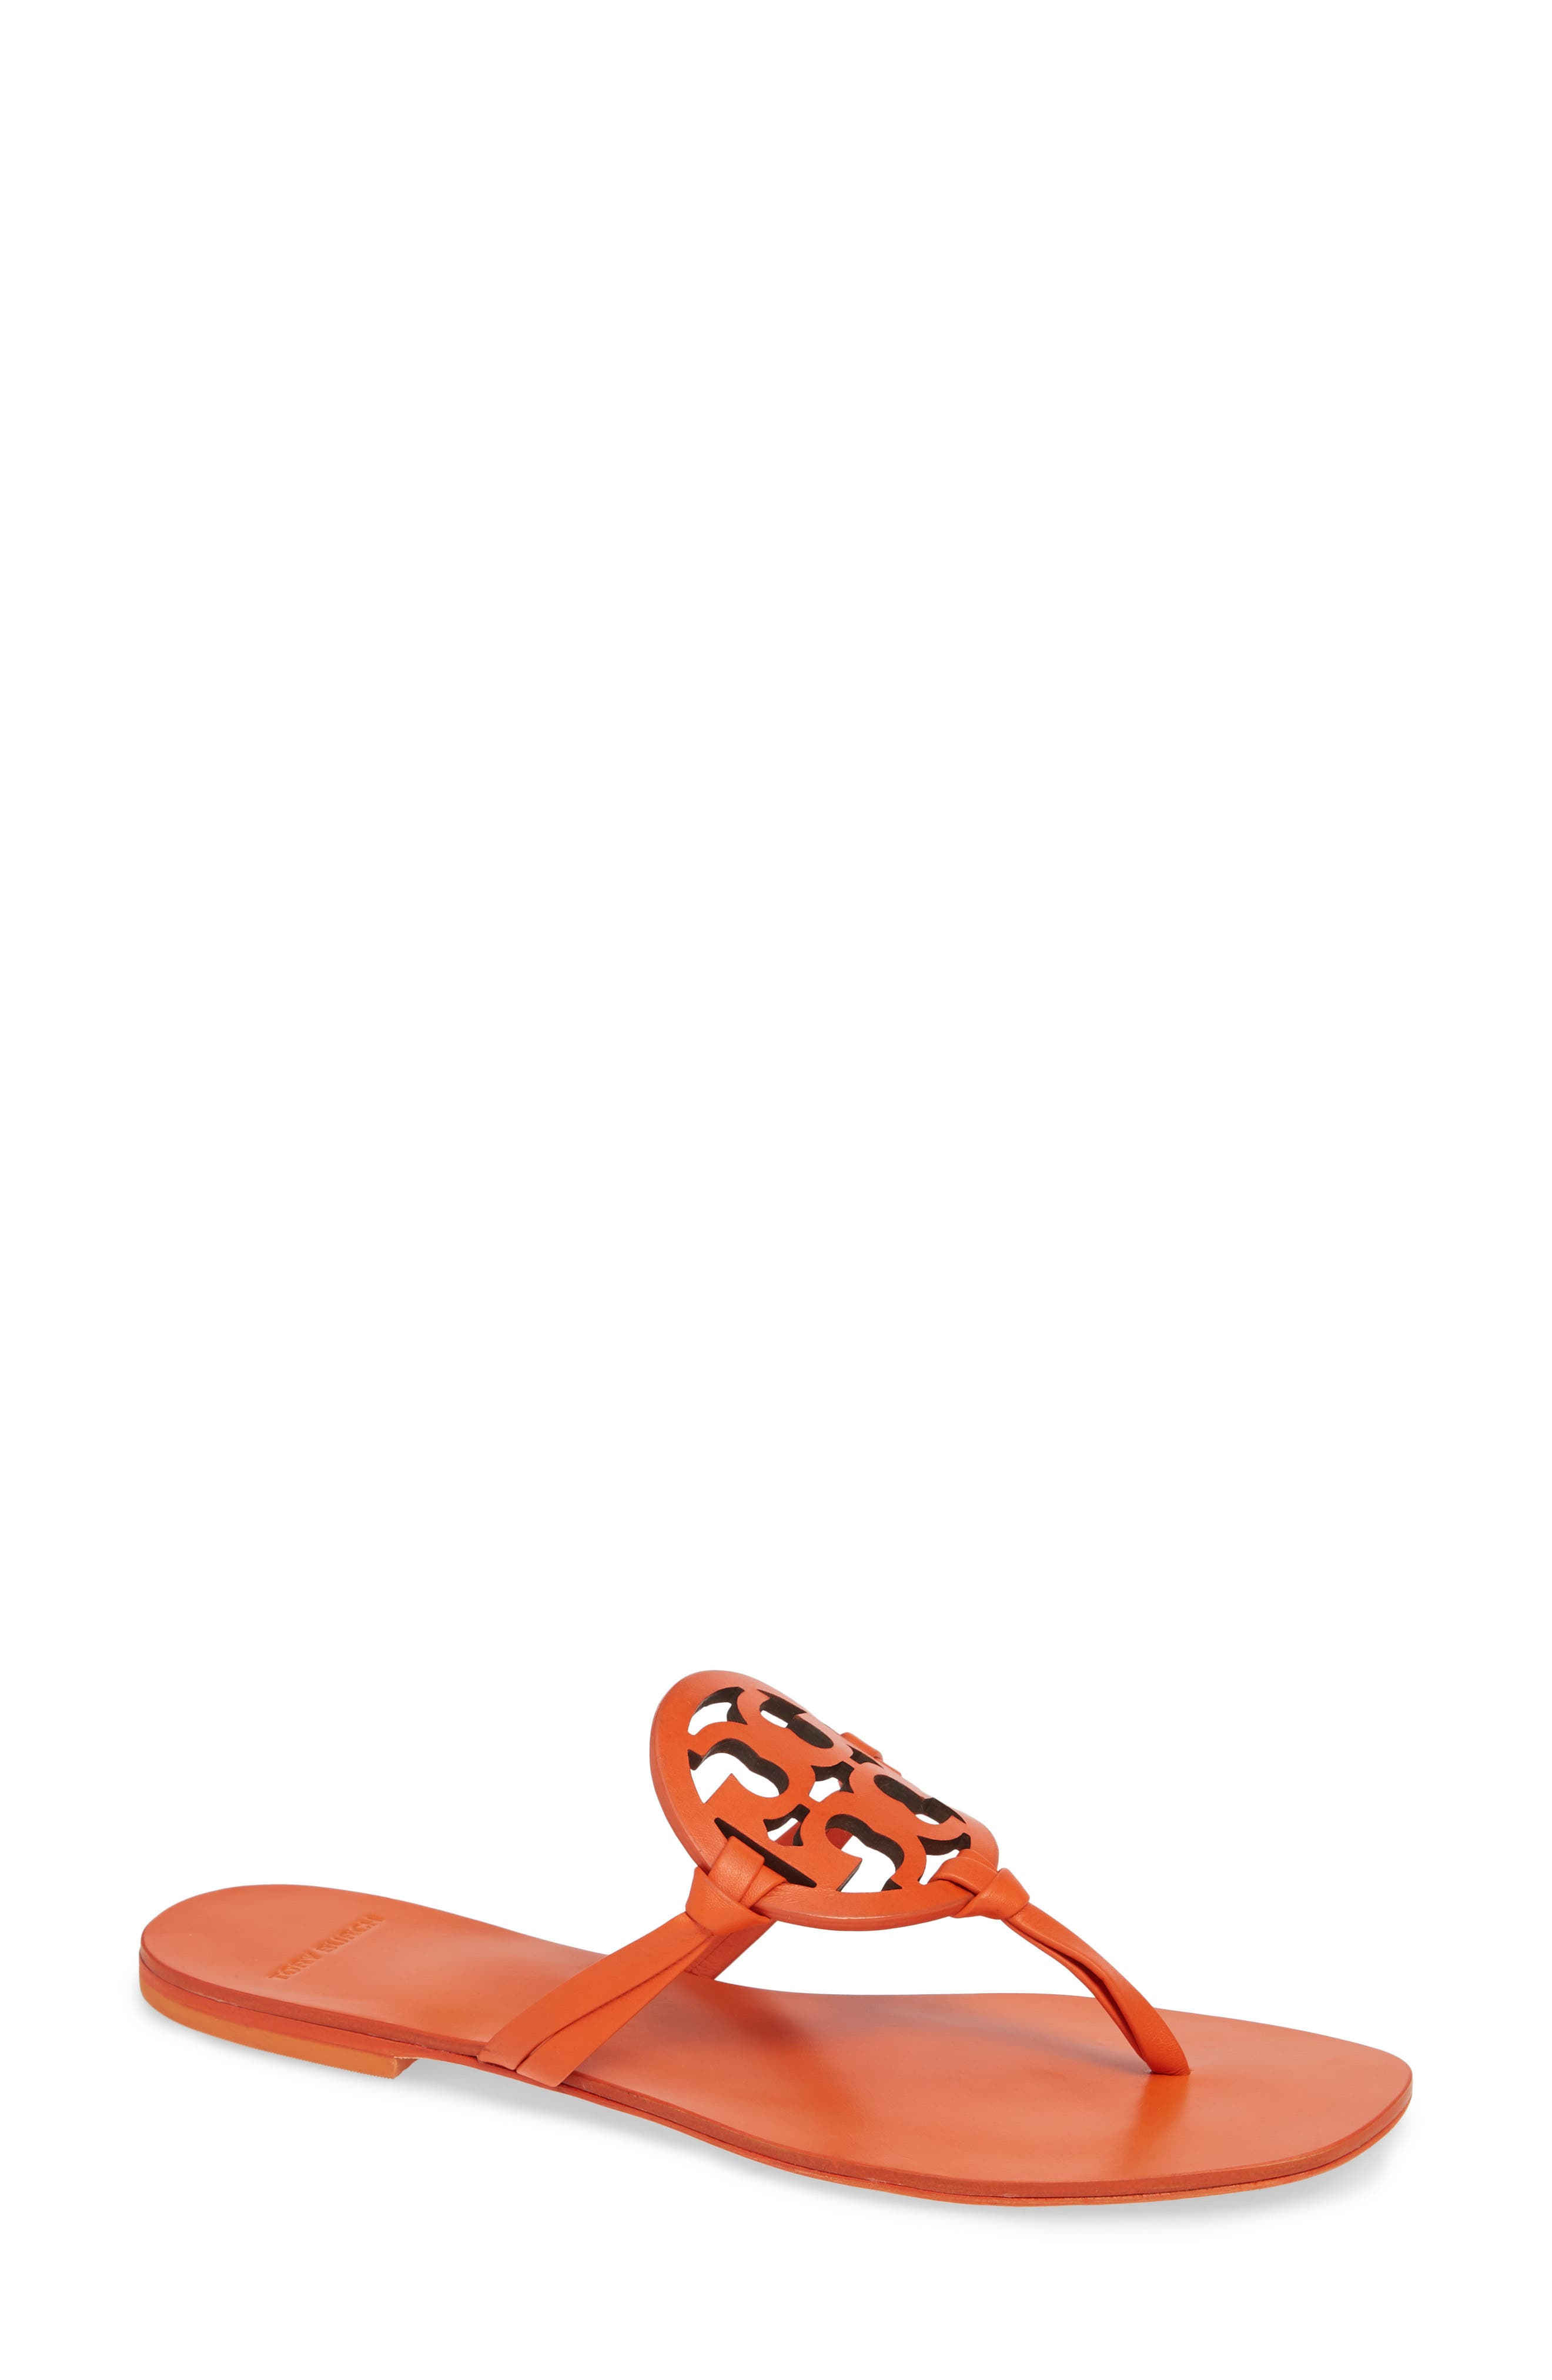 Women'S Miller Square Toe Leather Thong Sandals in Sweet Tangerine